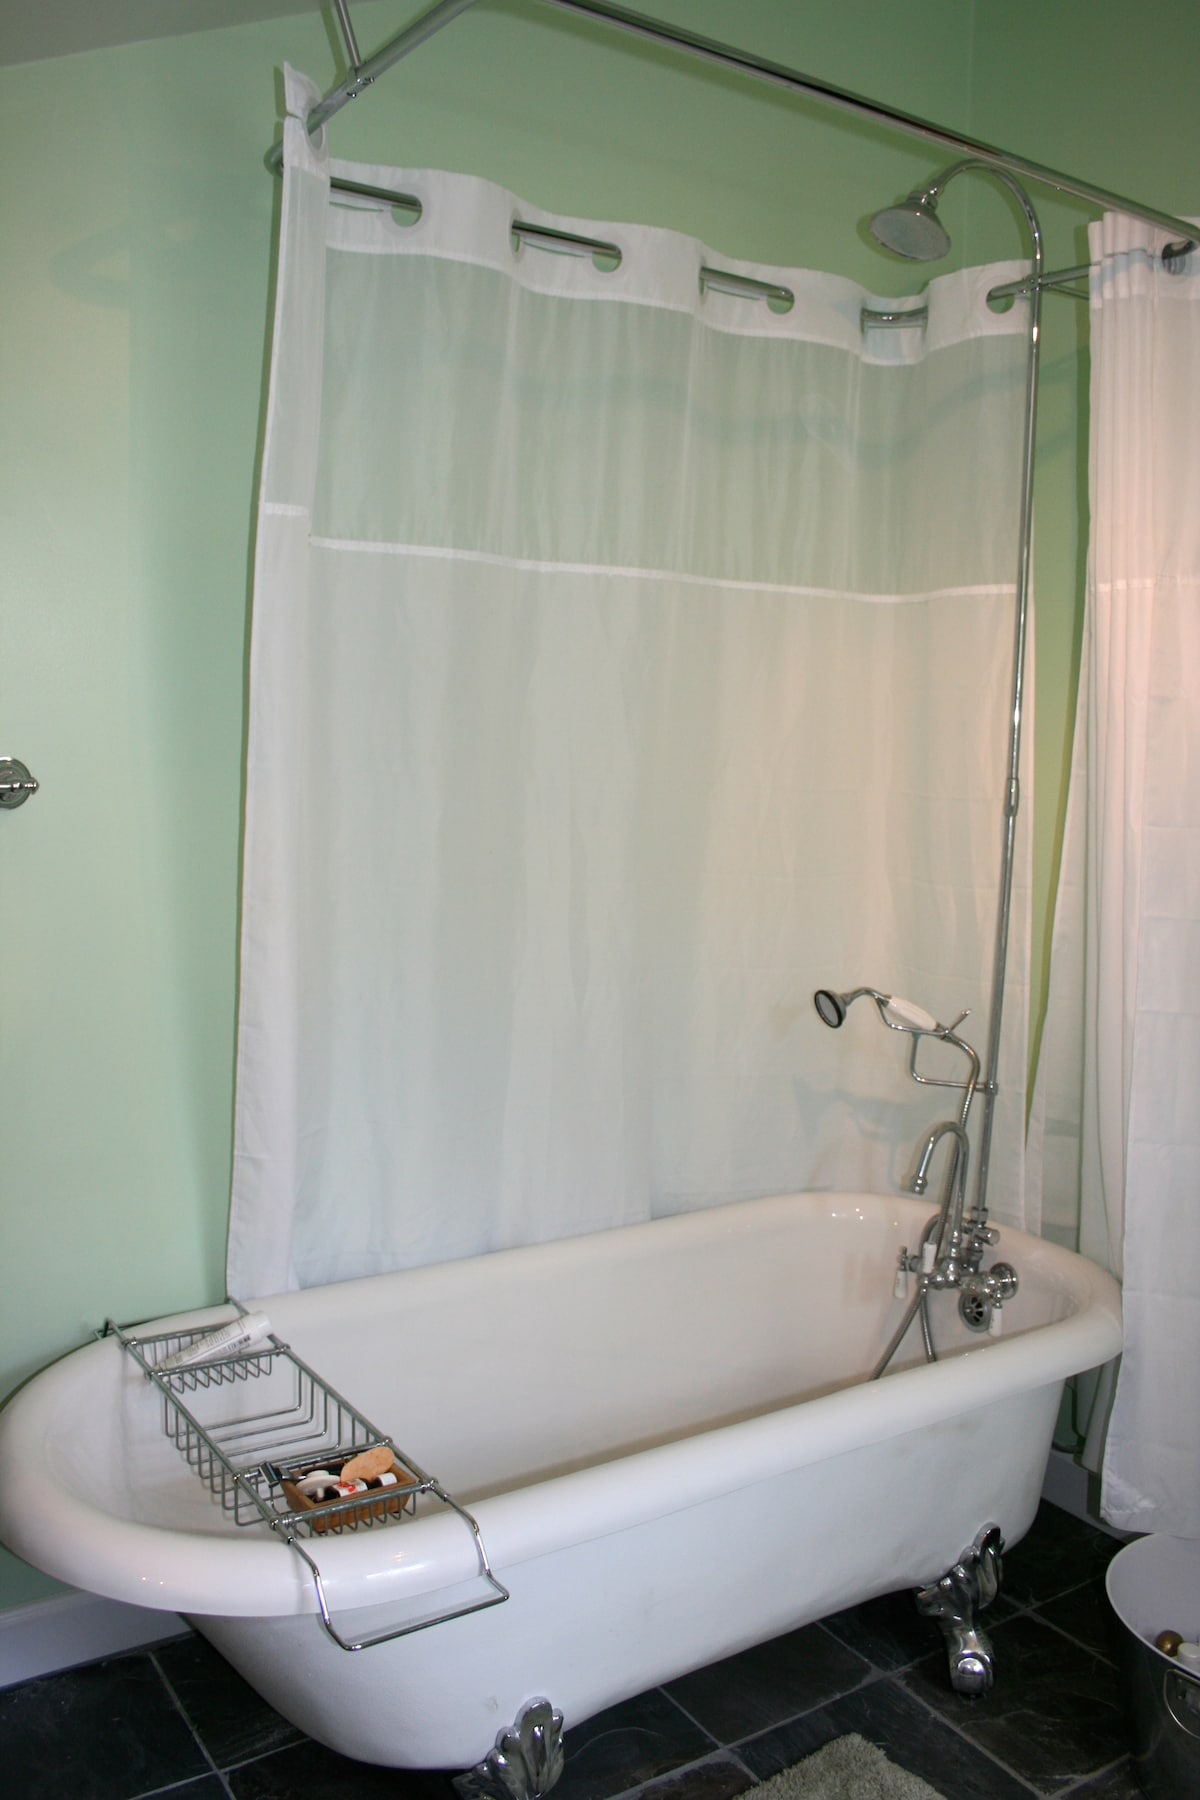 Claw foot tub converts to great shower.